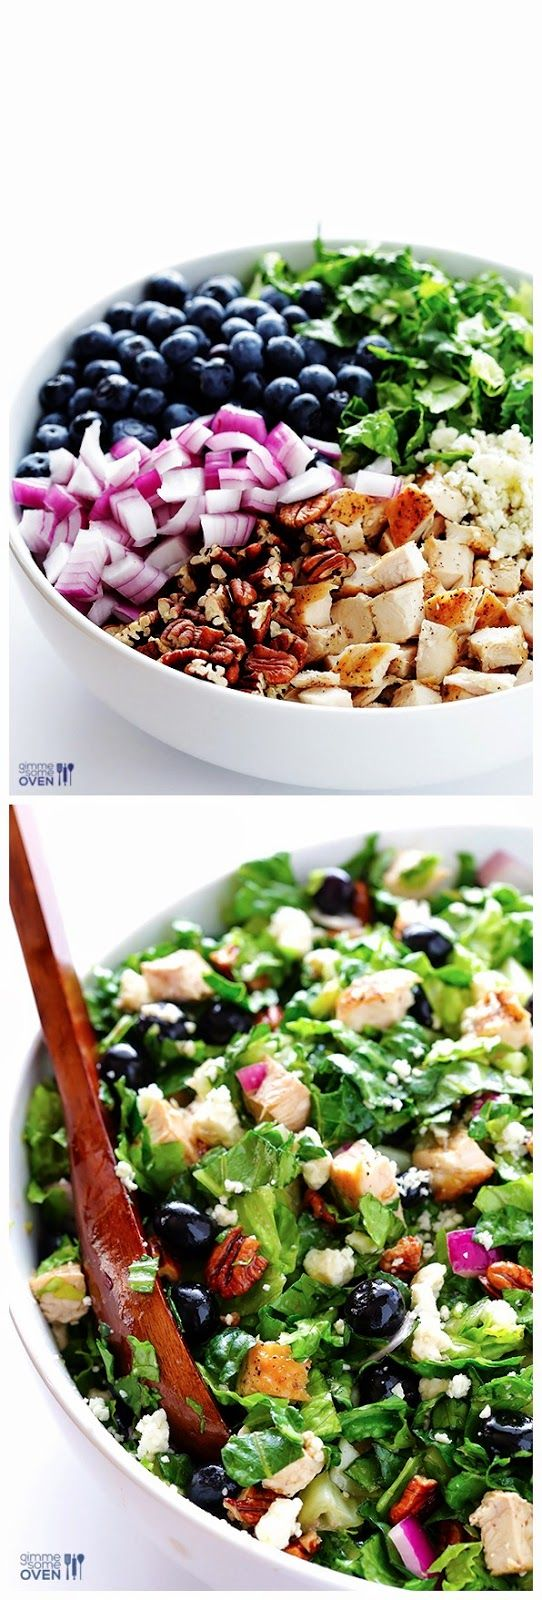 Blueberry Chicken Chopped Salad ~ Top Kitchen Magazine